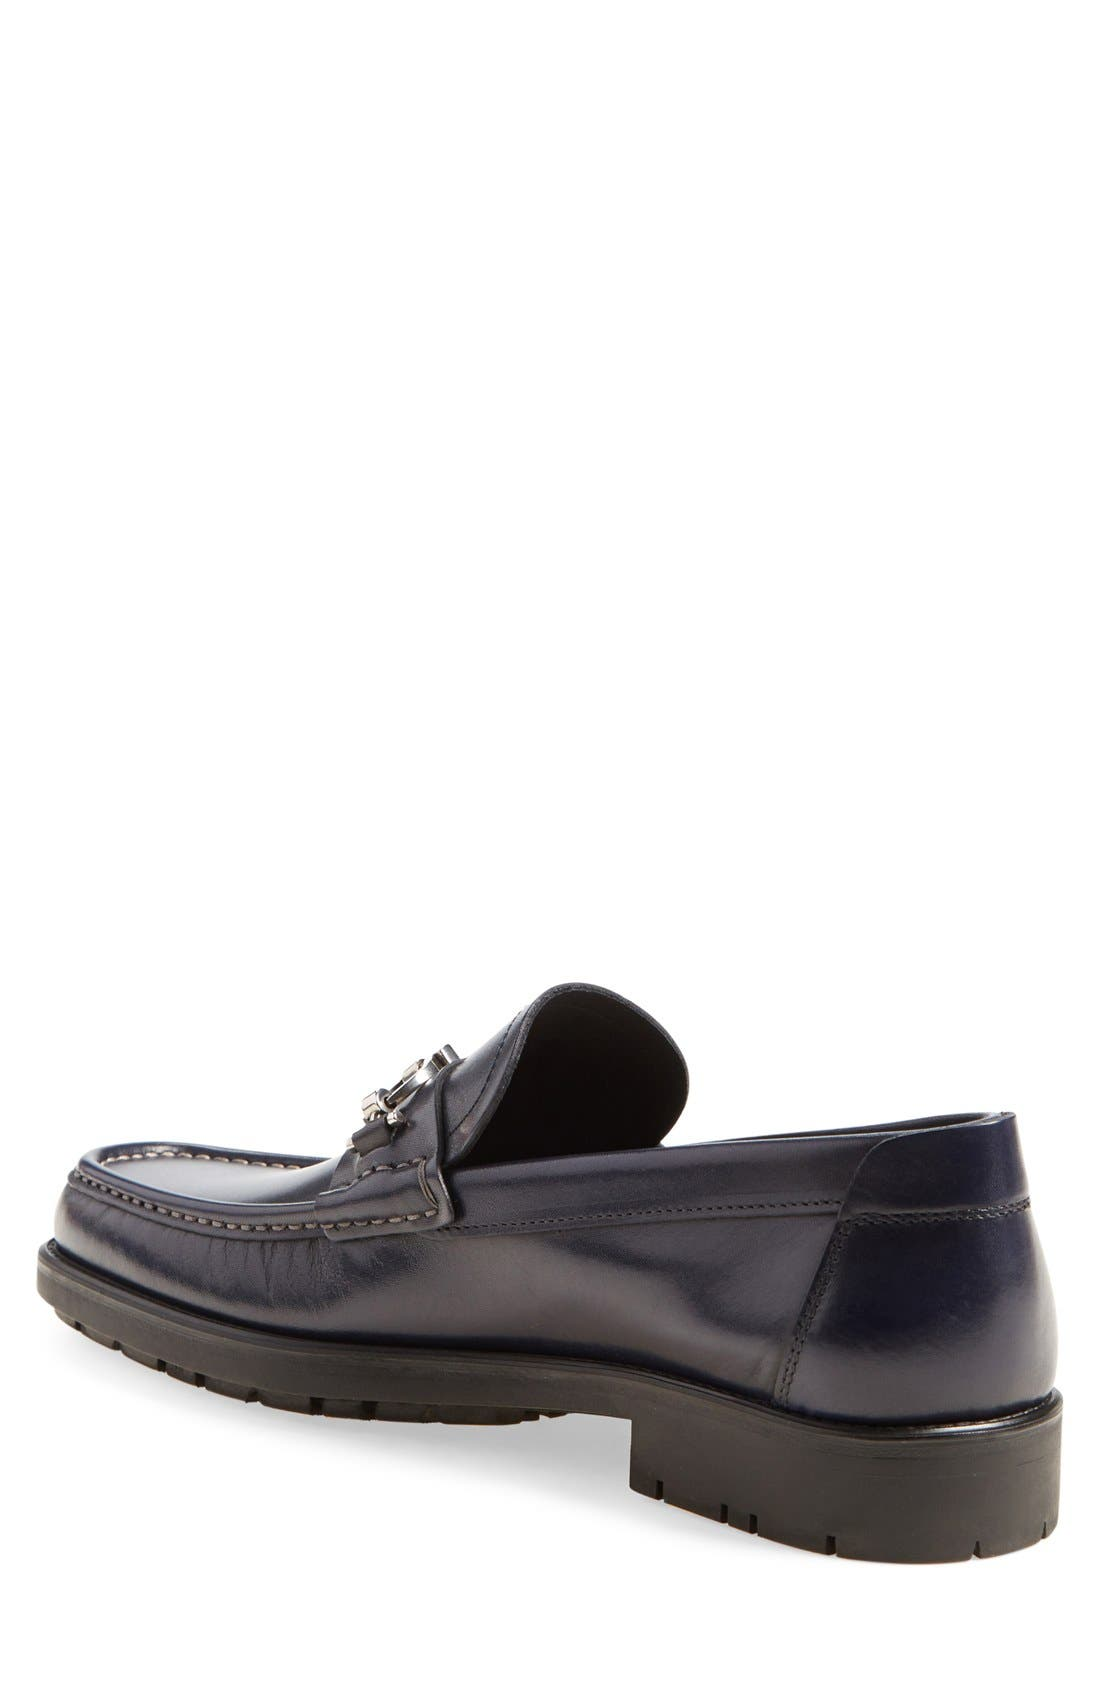 Alternate Image 2  - Salvatore Ferragamo 'Master' Loafer